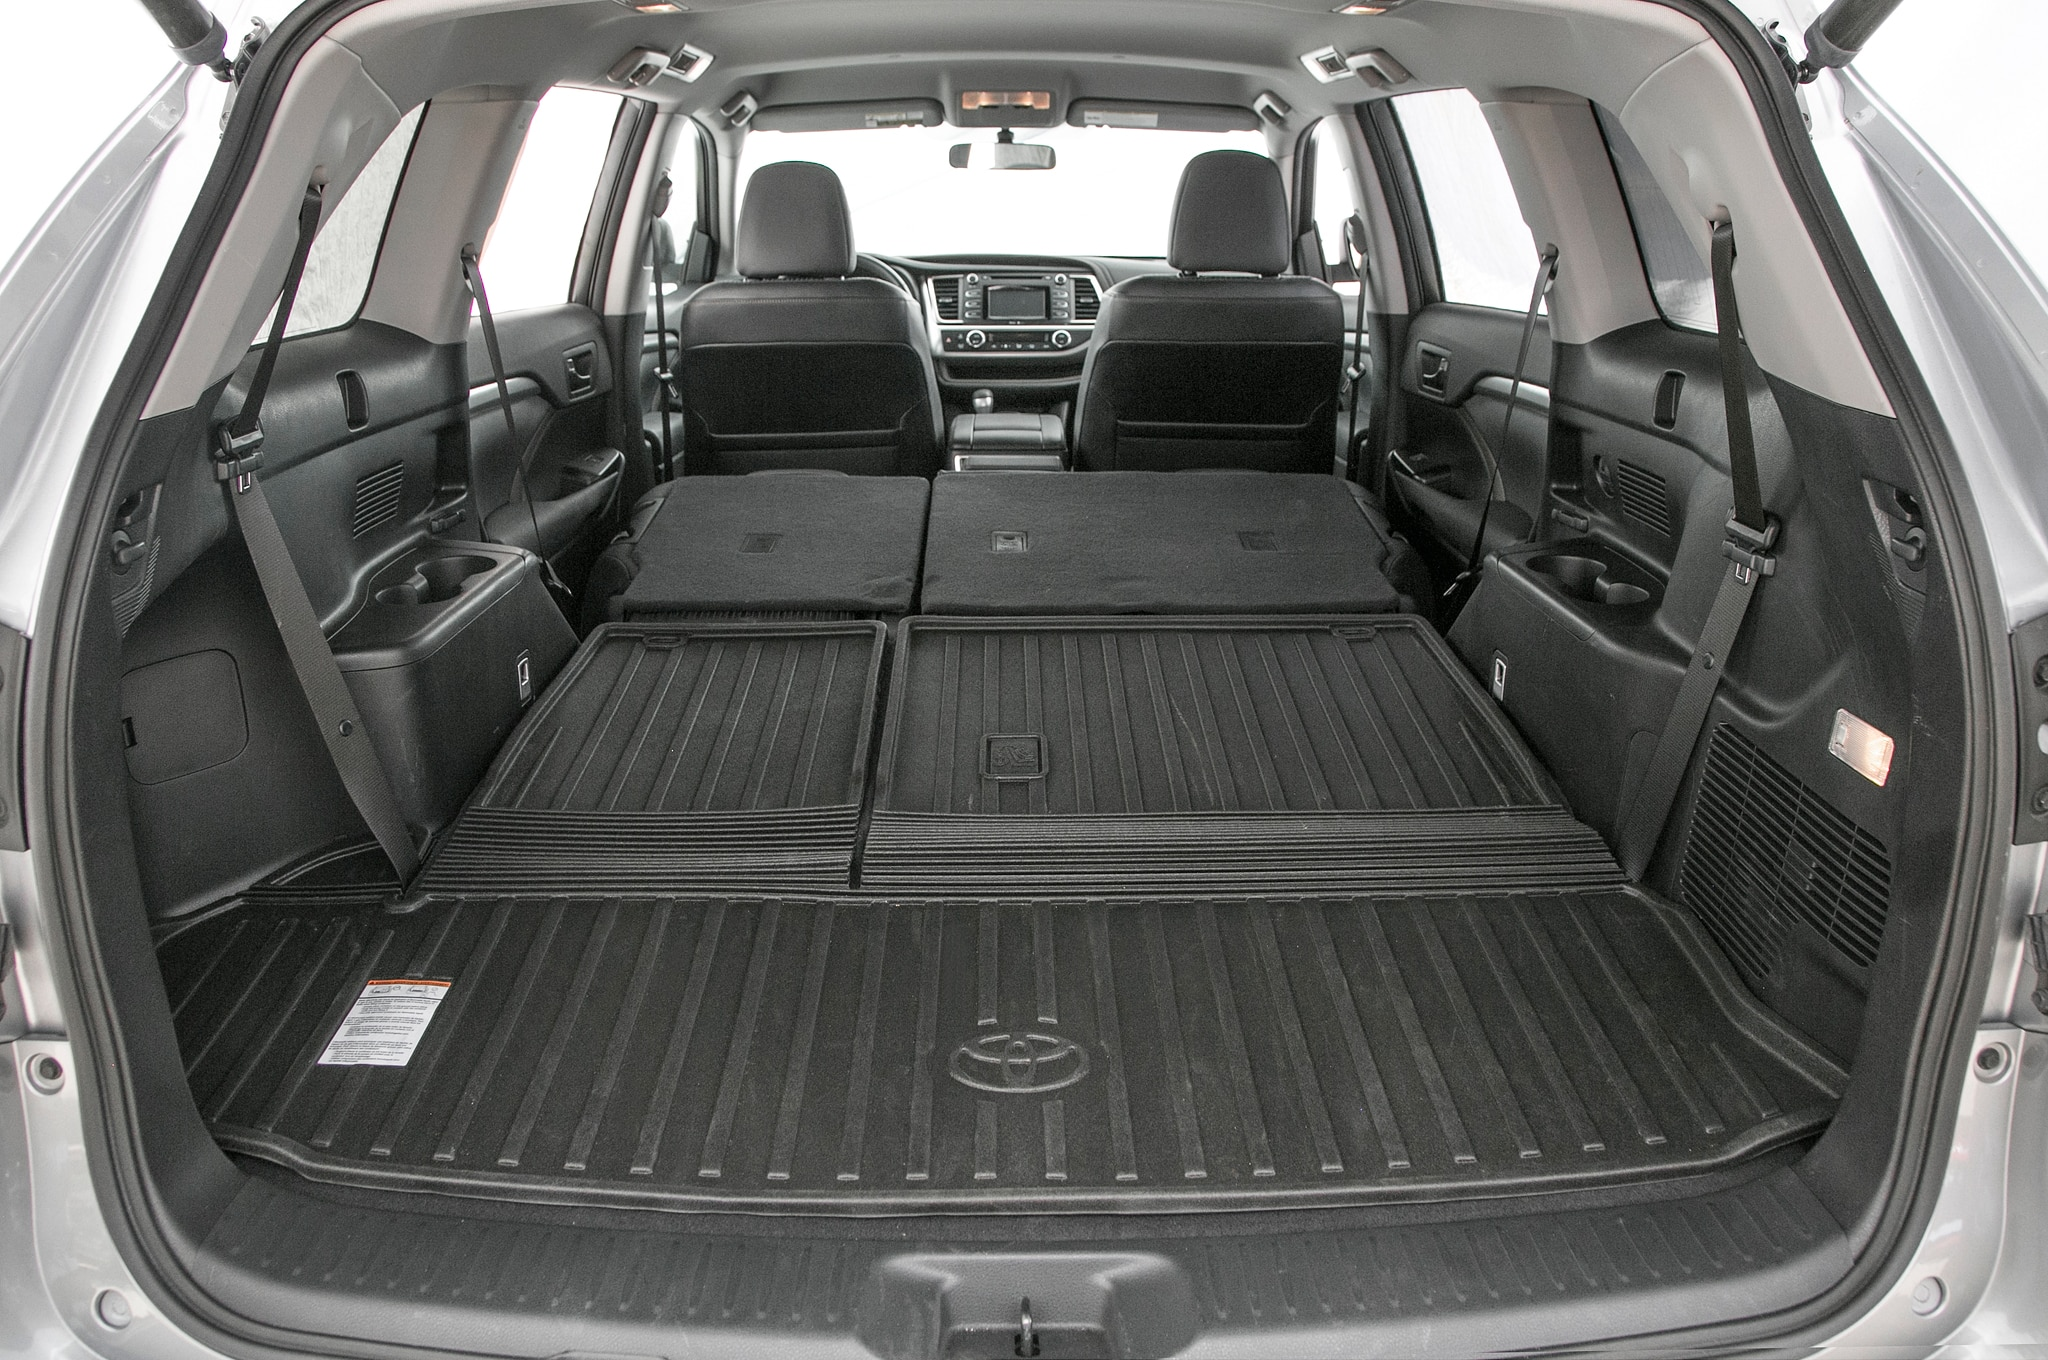 toyota highlander 3 5 fwd hybrid awd 2014 primera prueba. Black Bedroom Furniture Sets. Home Design Ideas